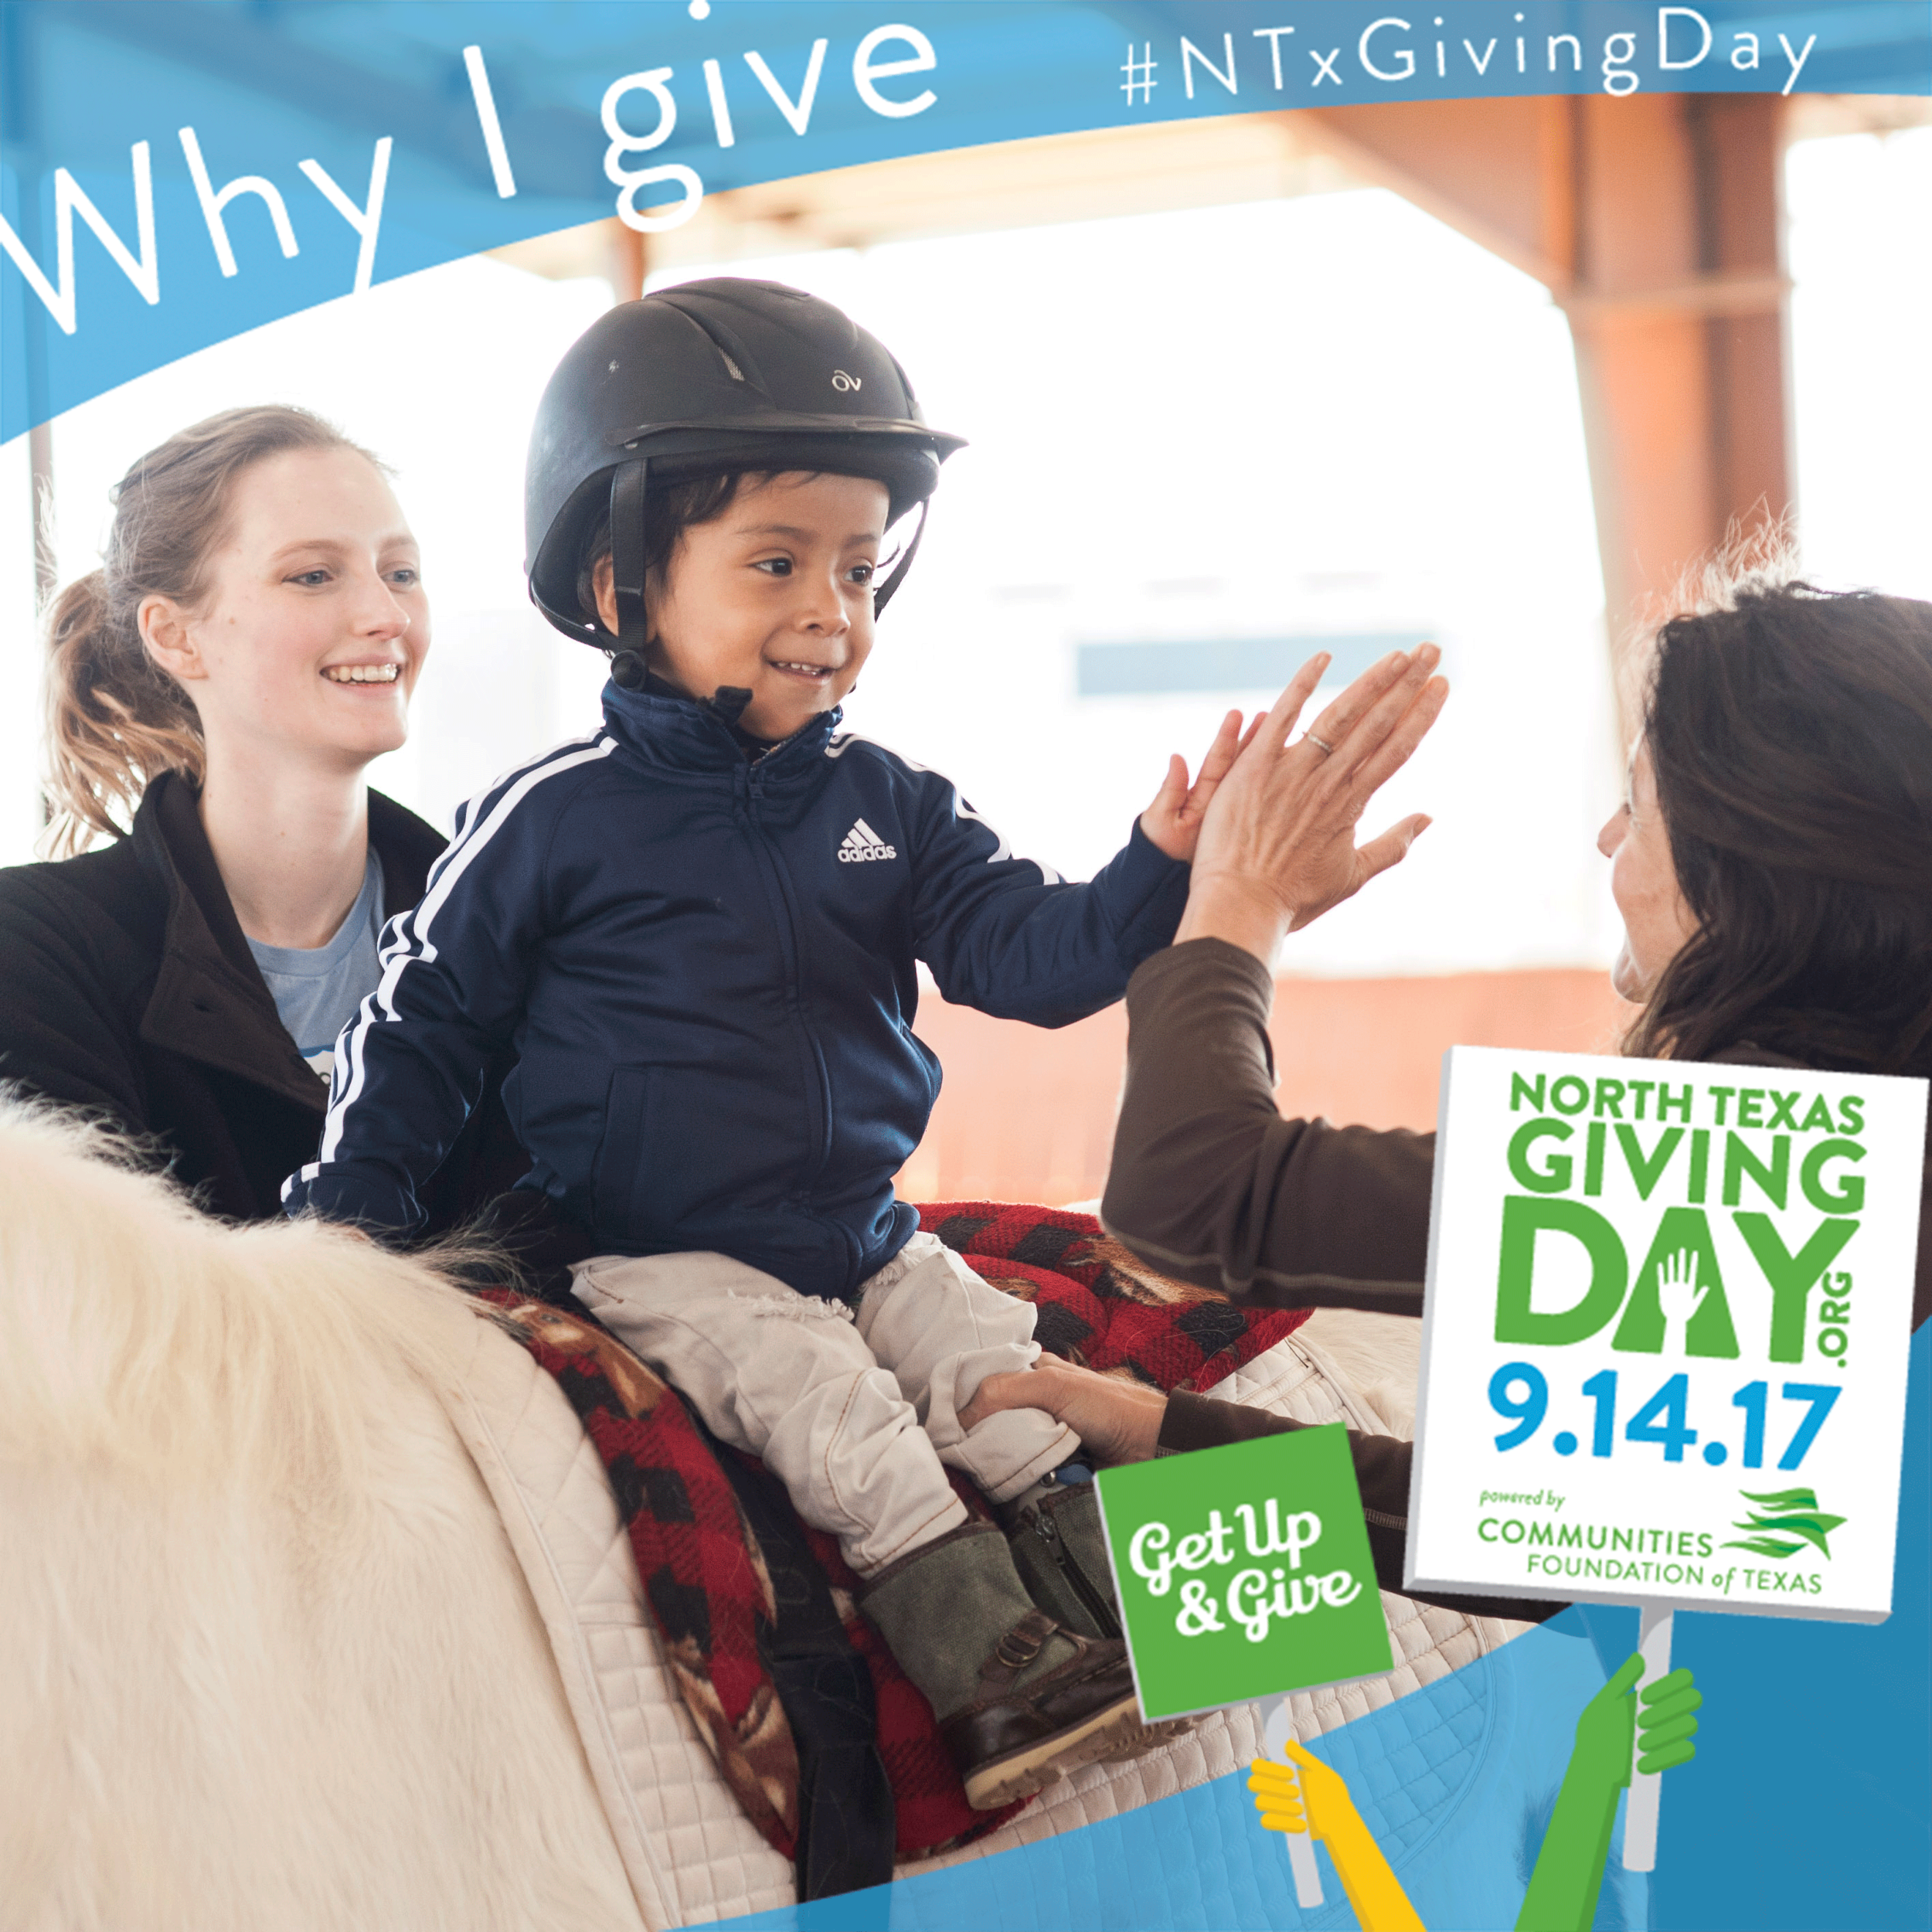 Jessica-Cline,-Client-Matthew,-Kristi-Immitt-OT,-Horse-Cody-why-I-give.png